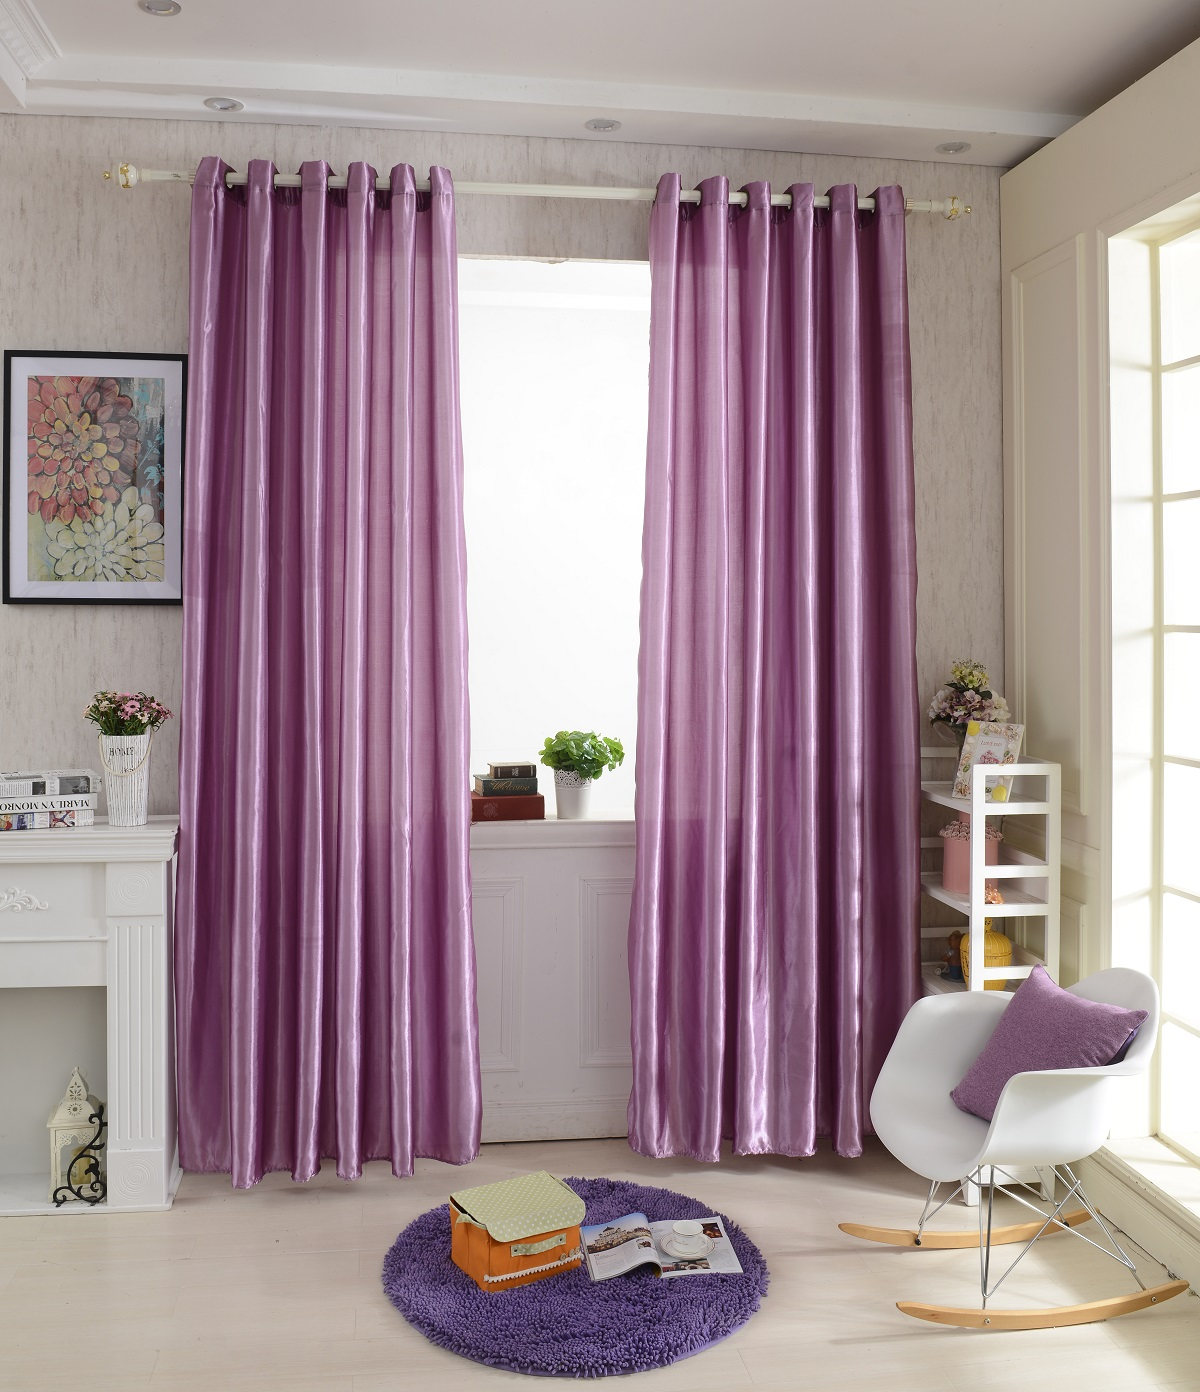 Solid Colors 100 250cm Modern Window Satin Fabric Curtain For Living Room Bedroom Hotel Office